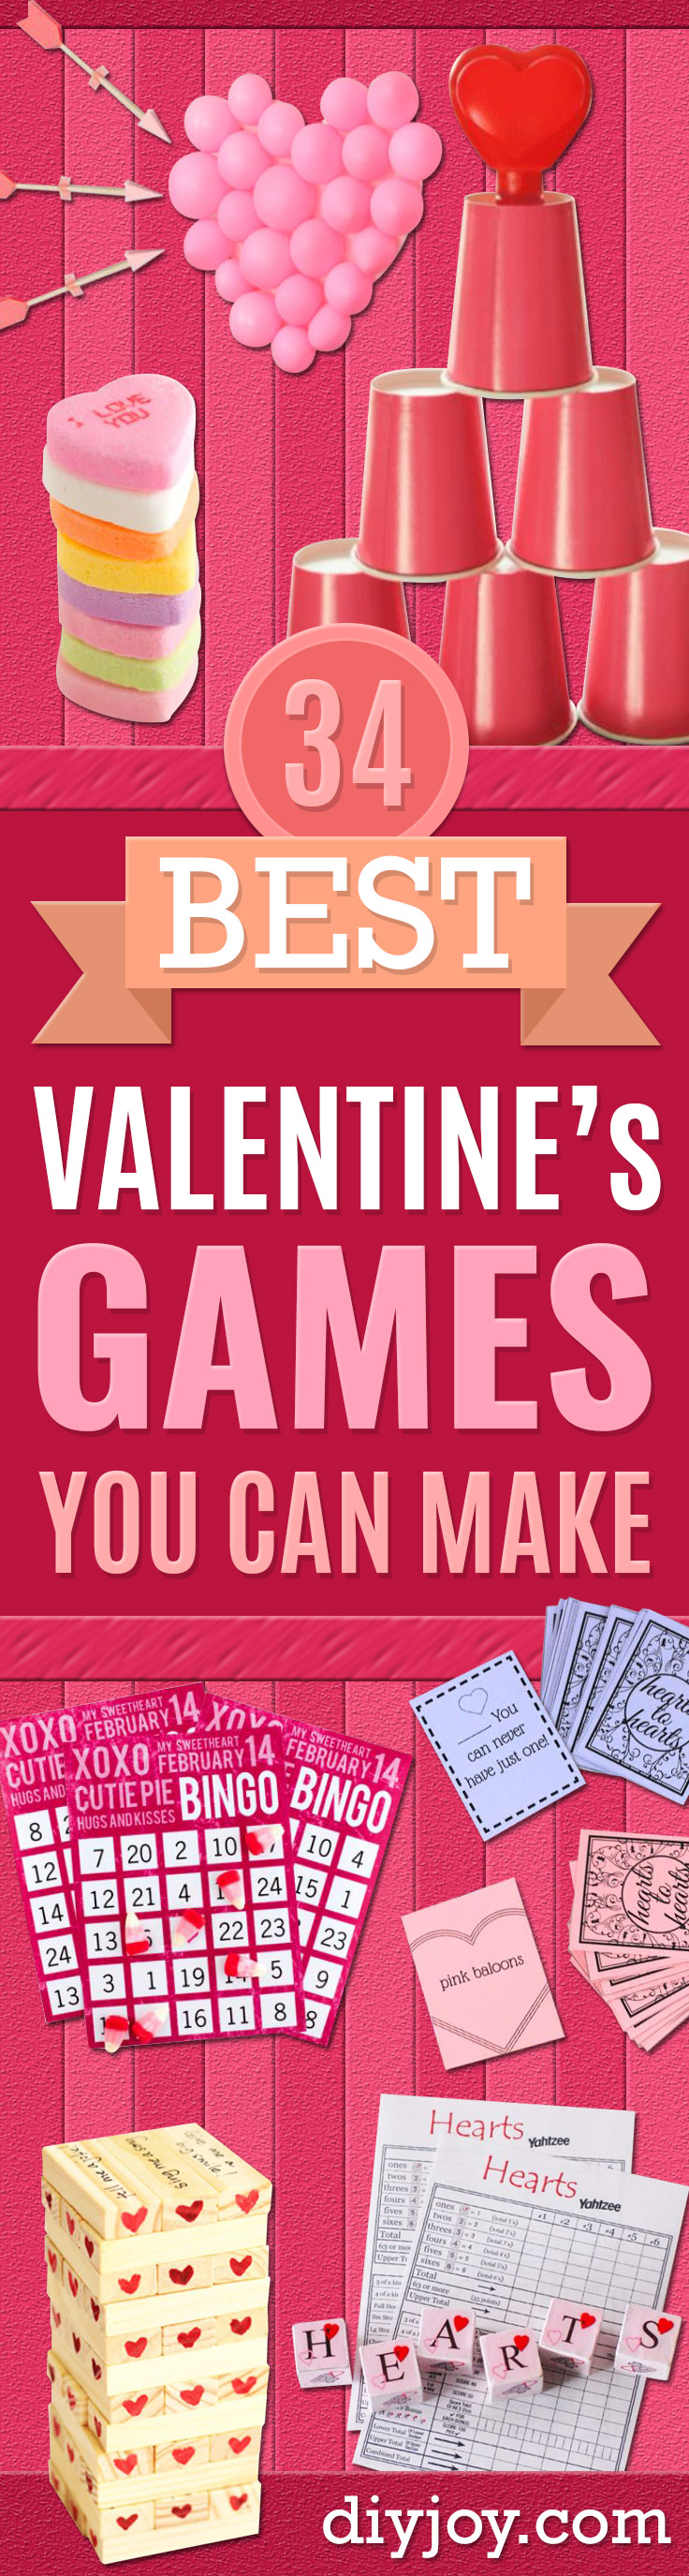 Cool Games To Make for Valentines Day - Cheap and Easy Crafts For Valentine Parties - Ideas for Kids and Adults to Play Bingo, Matching, Free Printables and Cute Game Projects With Hearts, Red and Pink Art Ideas - Adorable Fun for The Holiday Celebrations